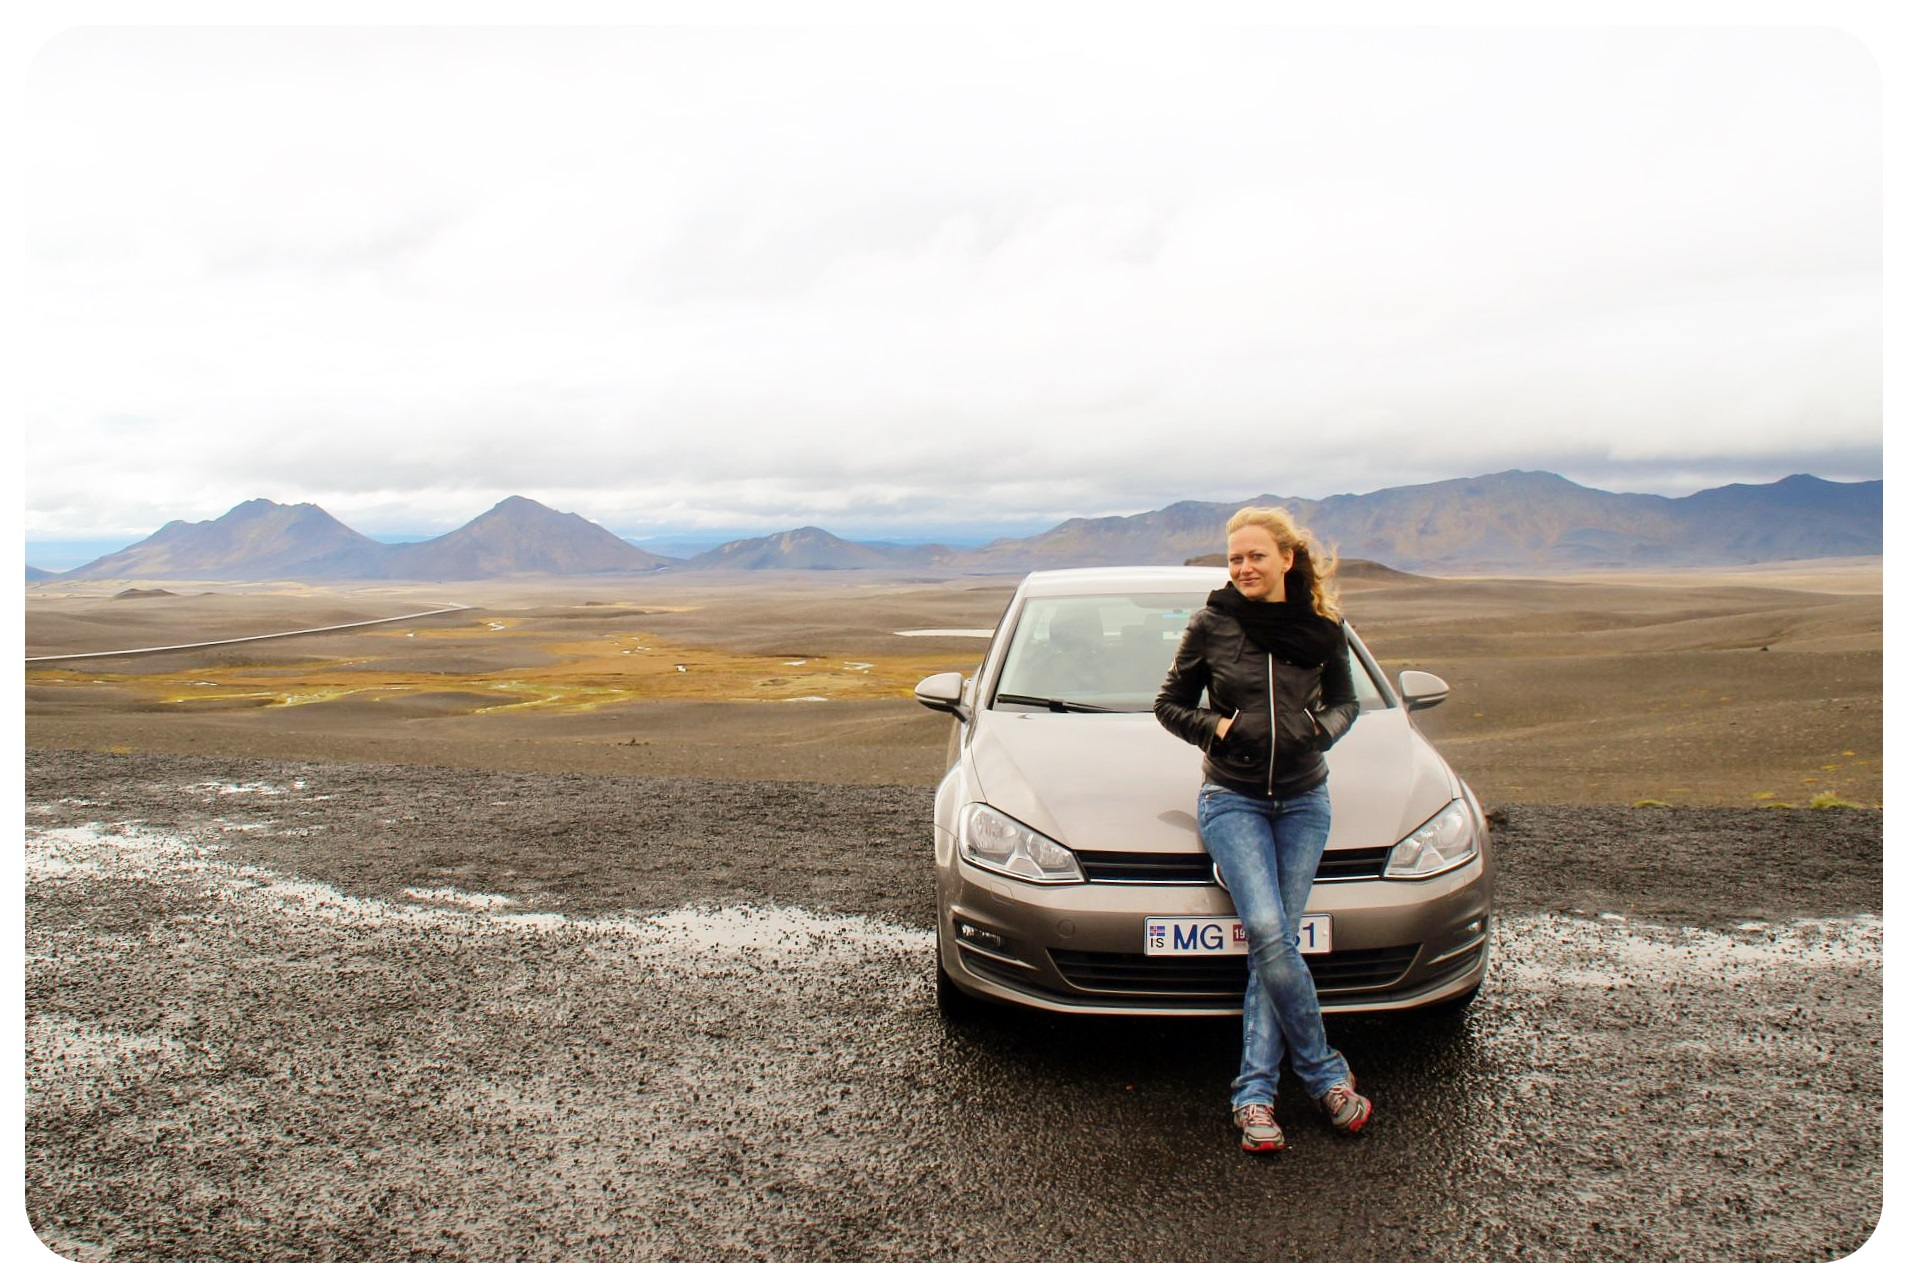 icelandic moonscape dani & car